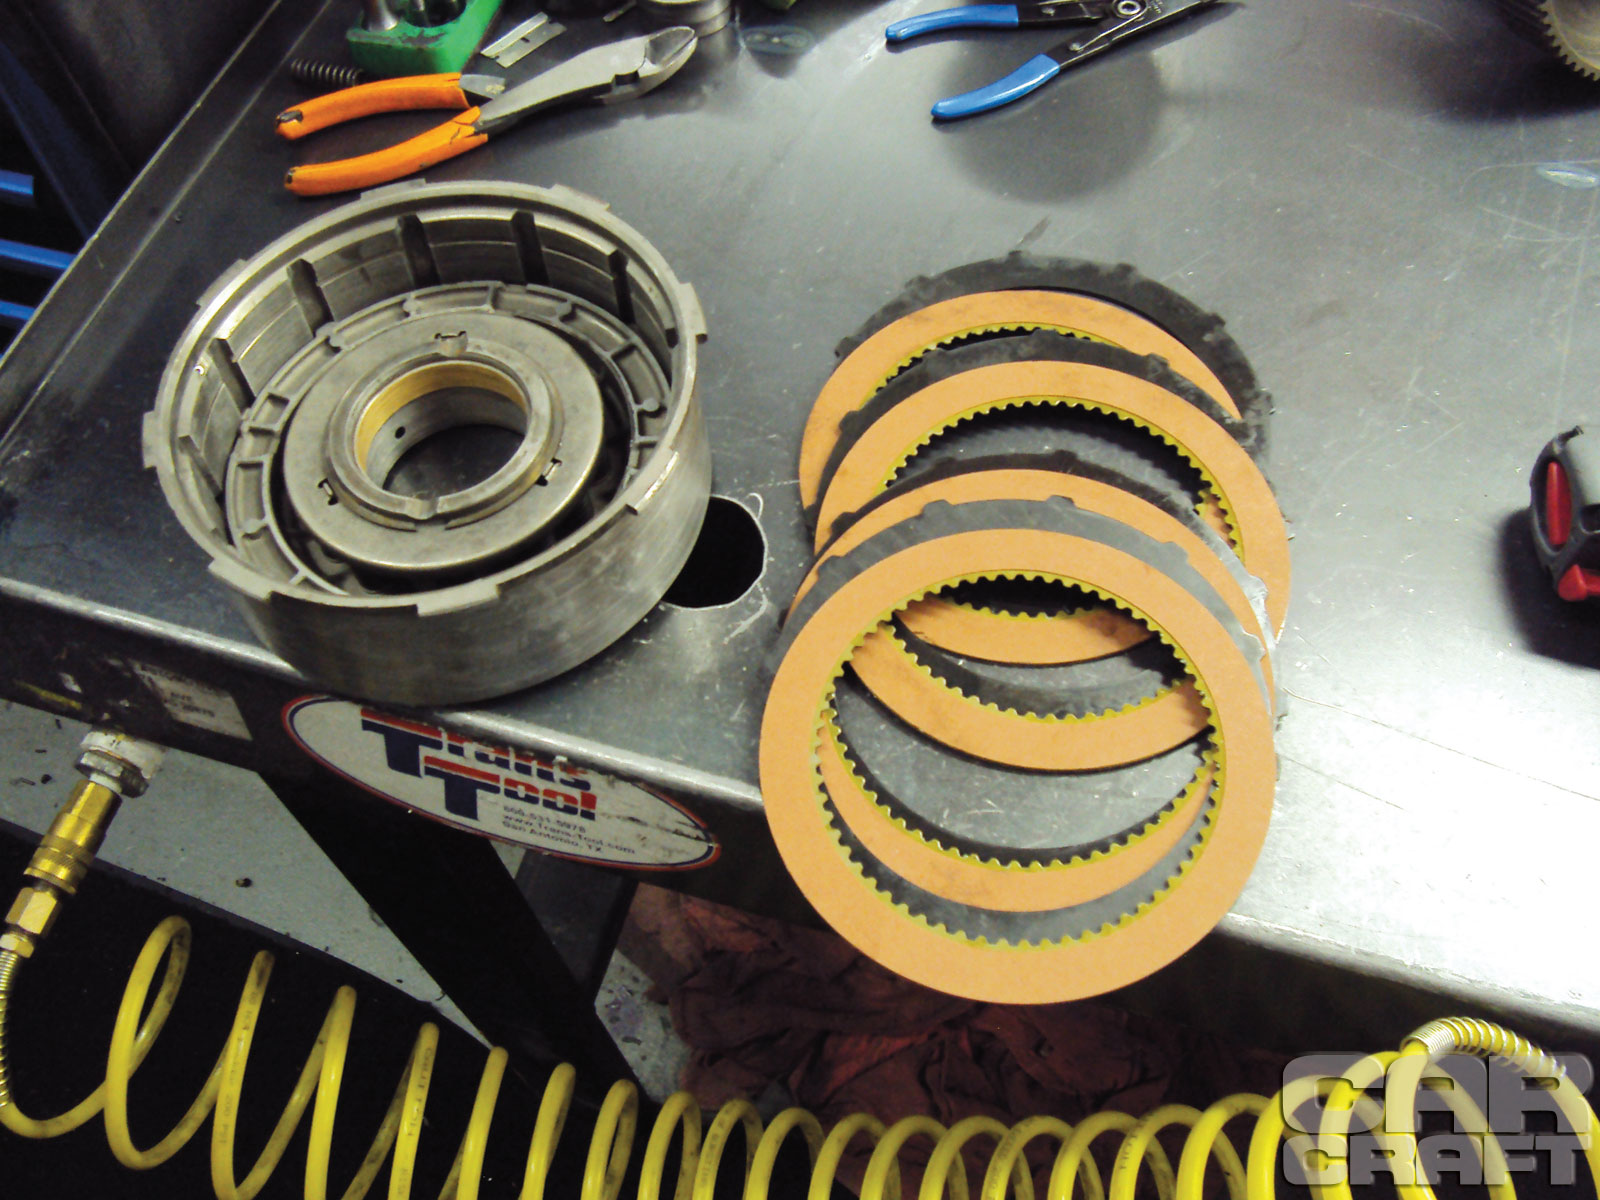 This is the high-gear drum. It contains the clutches and steels that are upgraded for additional longevity. The clutches use a heat-resistant friction material from Alto that reduces the amount of slip during each shift, therefore reducing heat and wear. In High gear, all these clutches and steel are under load and producing heat.